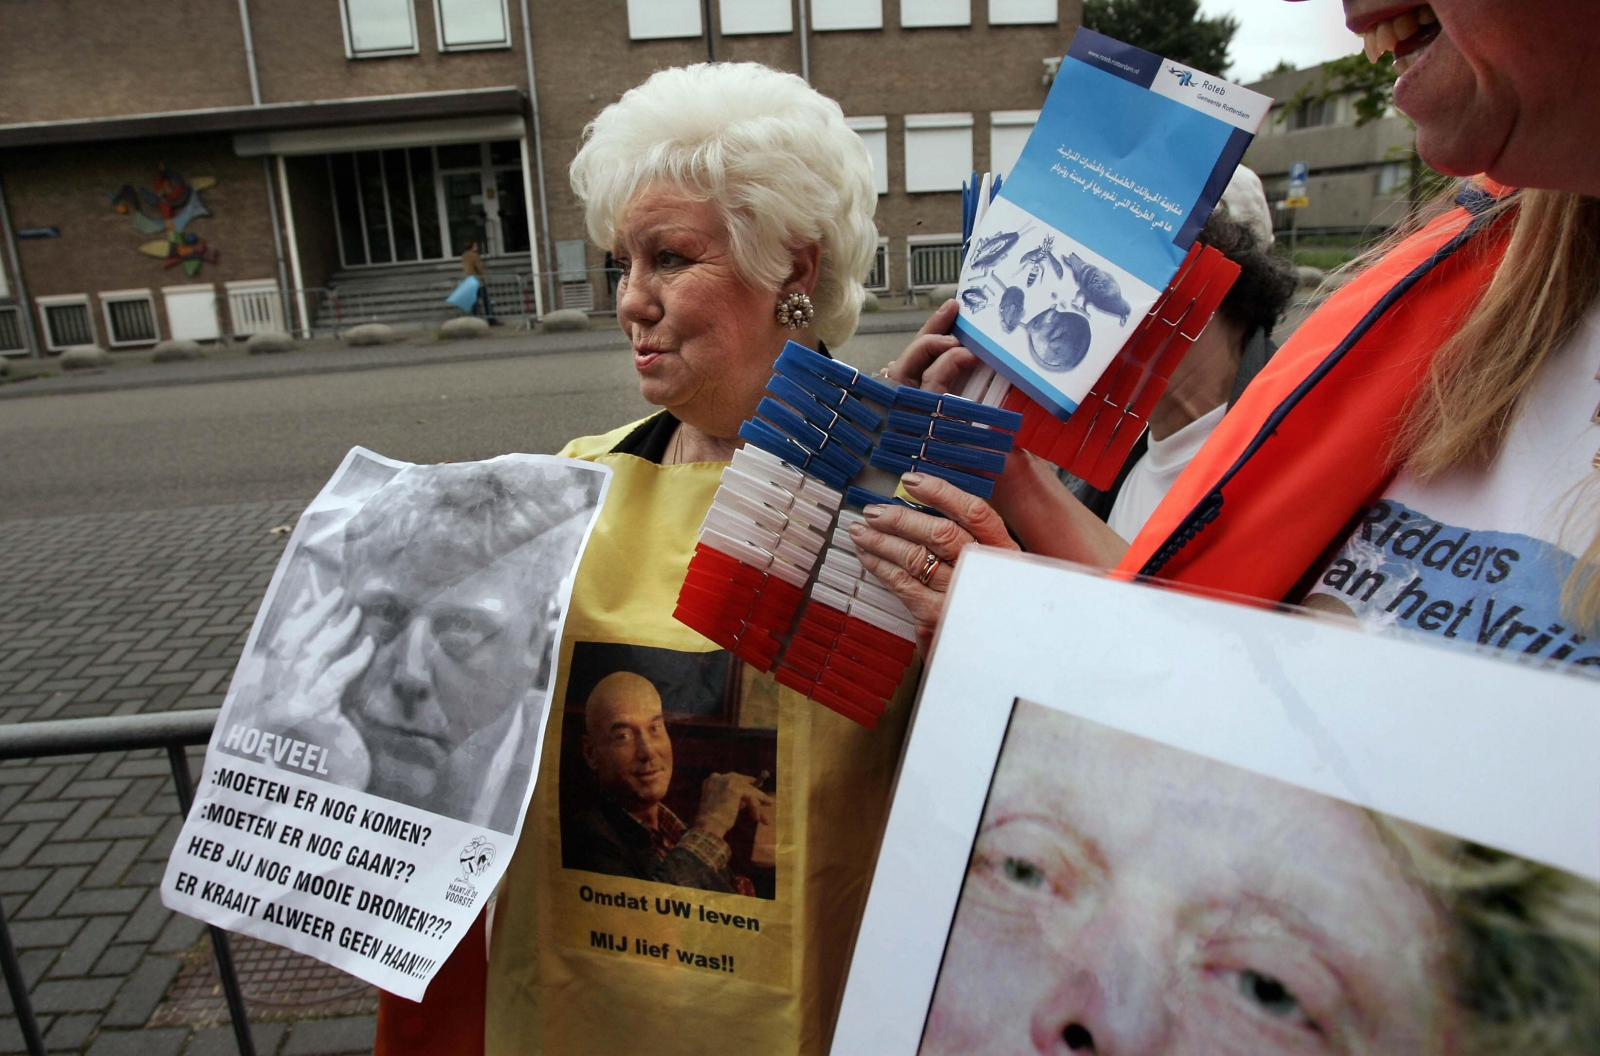 Supporters of Pim Fortuyn, Theo van Gogh